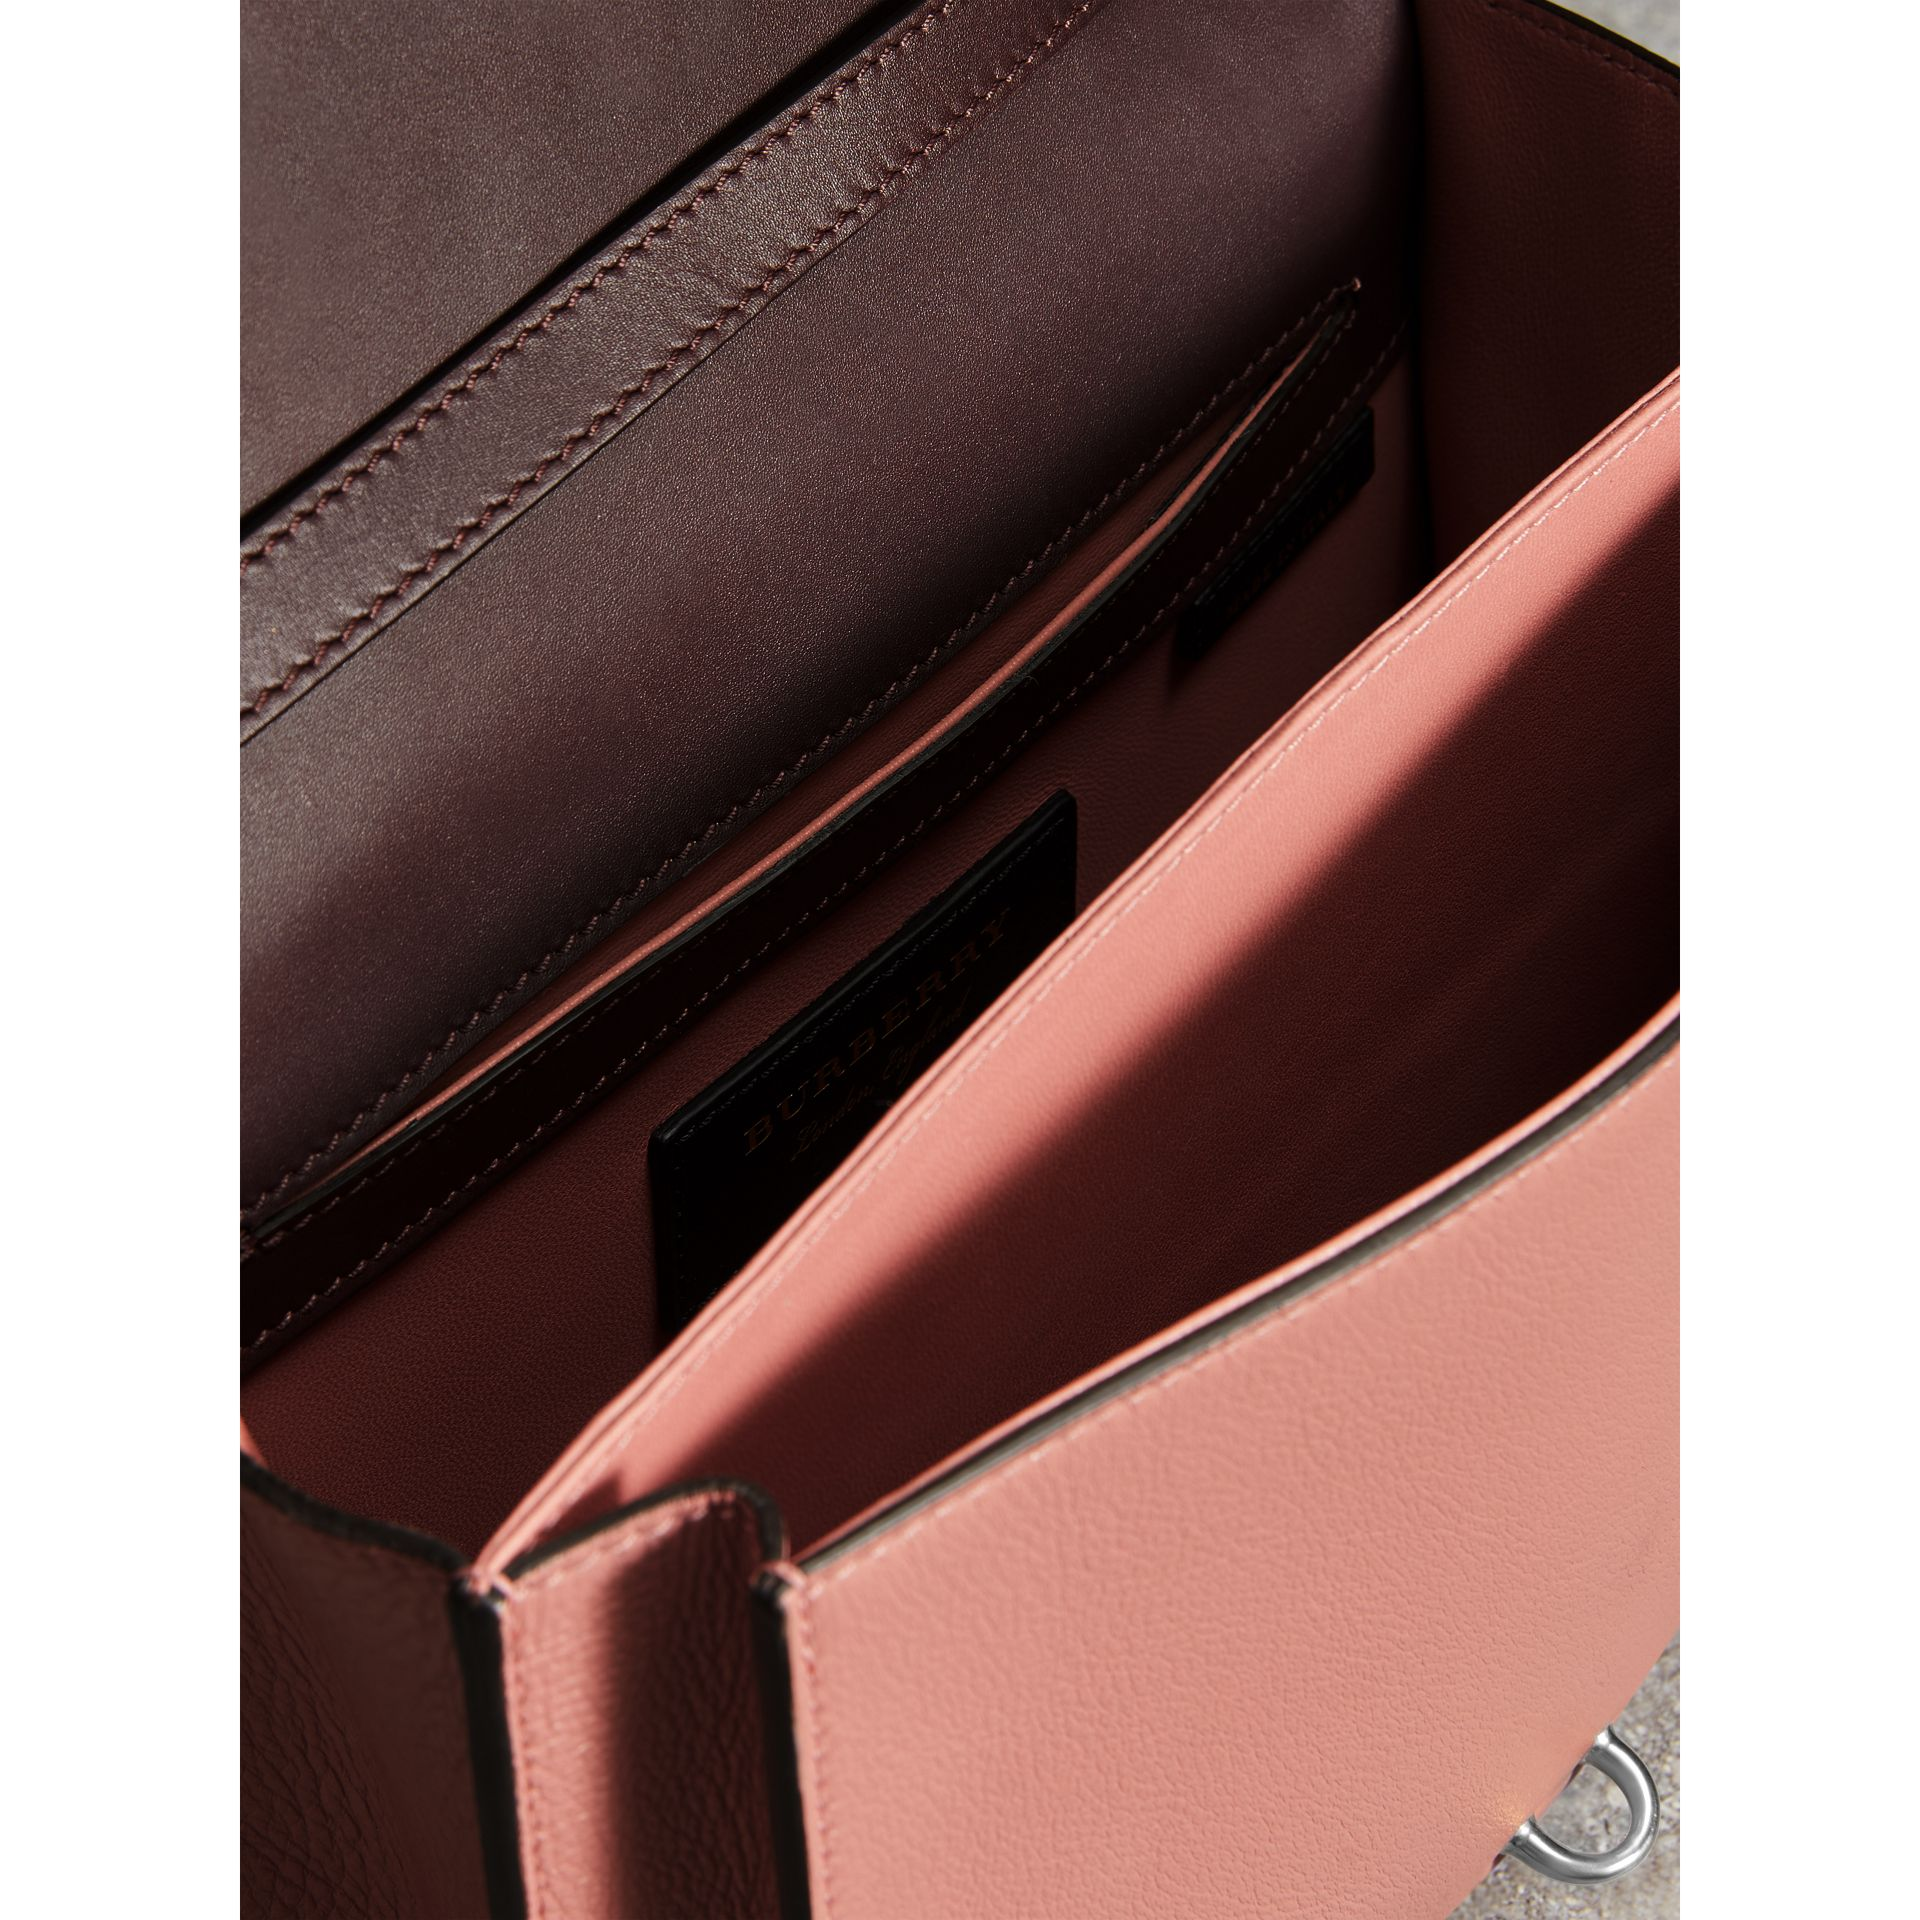 Two-tone Leather Crossbody Bag in Dusty Rose/deep Claret - Women | Burberry United Kingdom - gallery image 5